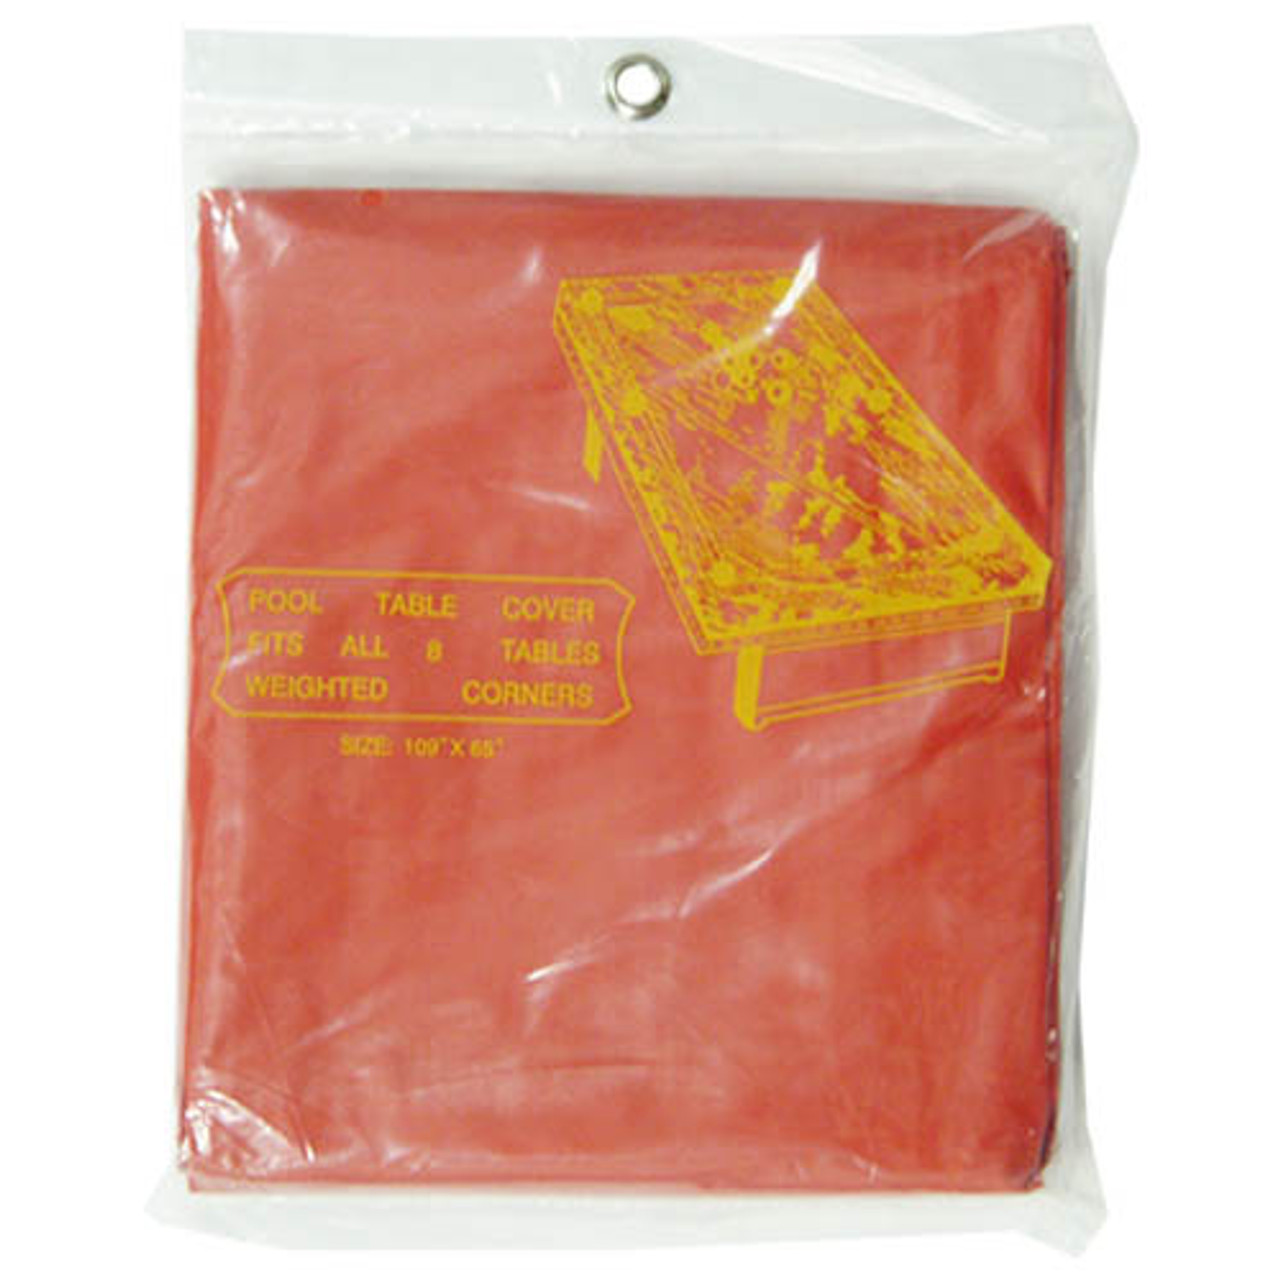 Standard Pool Table Cover, Red